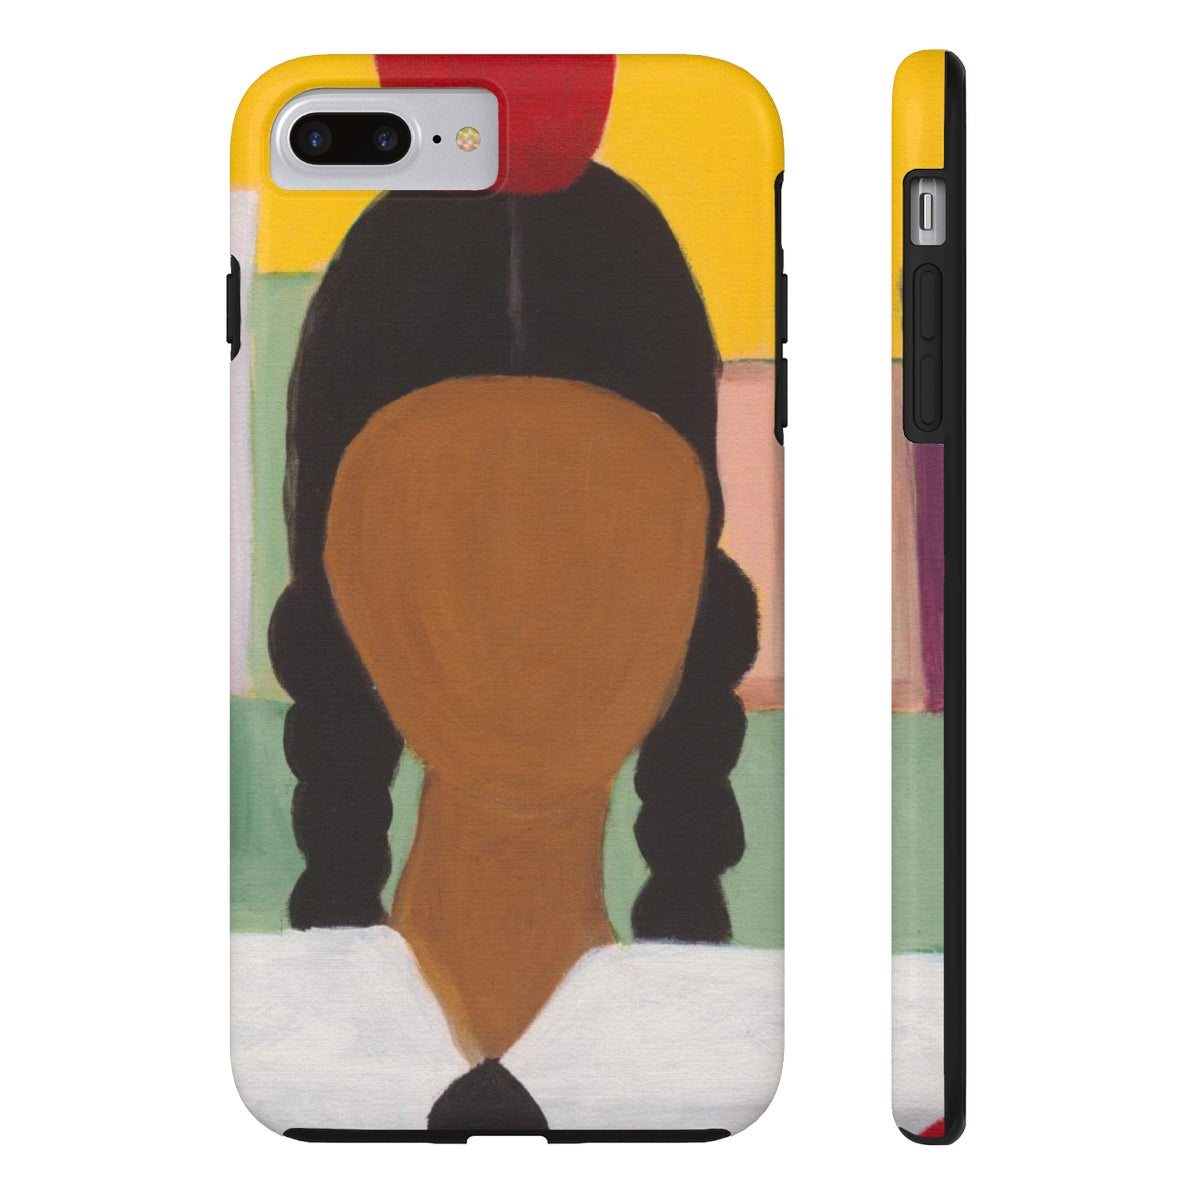 Mis Education Unisex Samsung / iPhone Phone Case